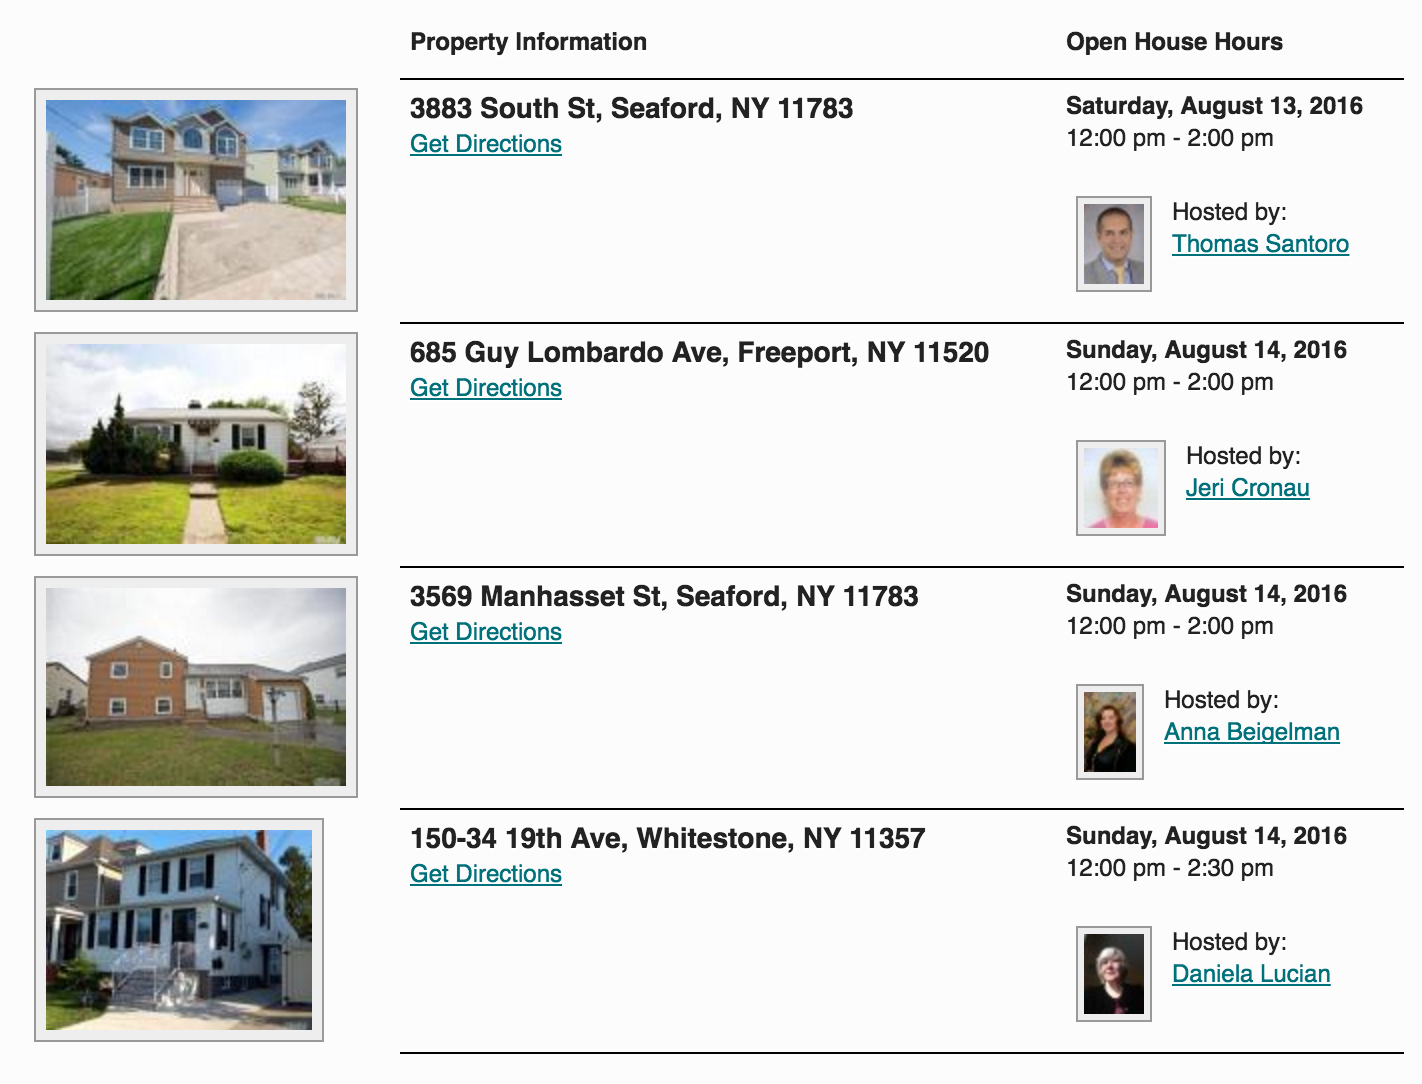 Open Houses in Long Island this Weekend 8/13 & 8/14